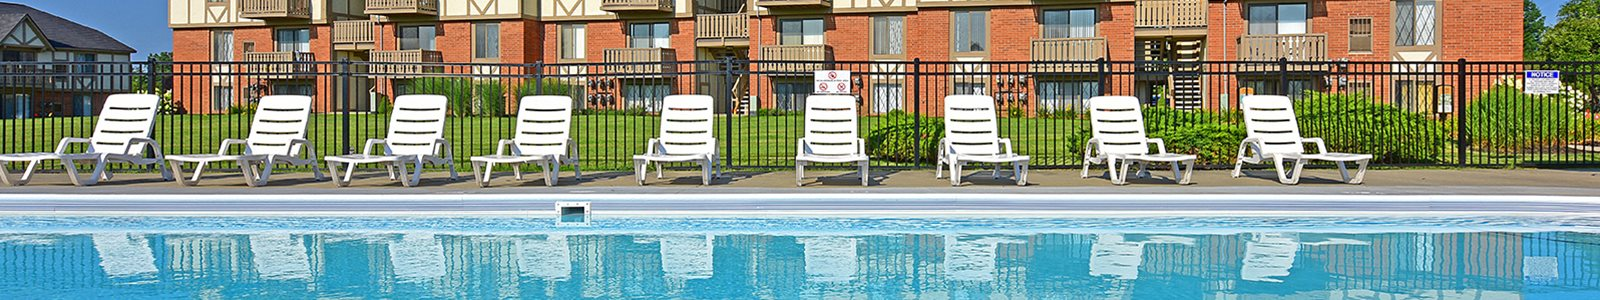 Pool With Sunning Deck at Grand Bend Club Apartments, Grand Blanc